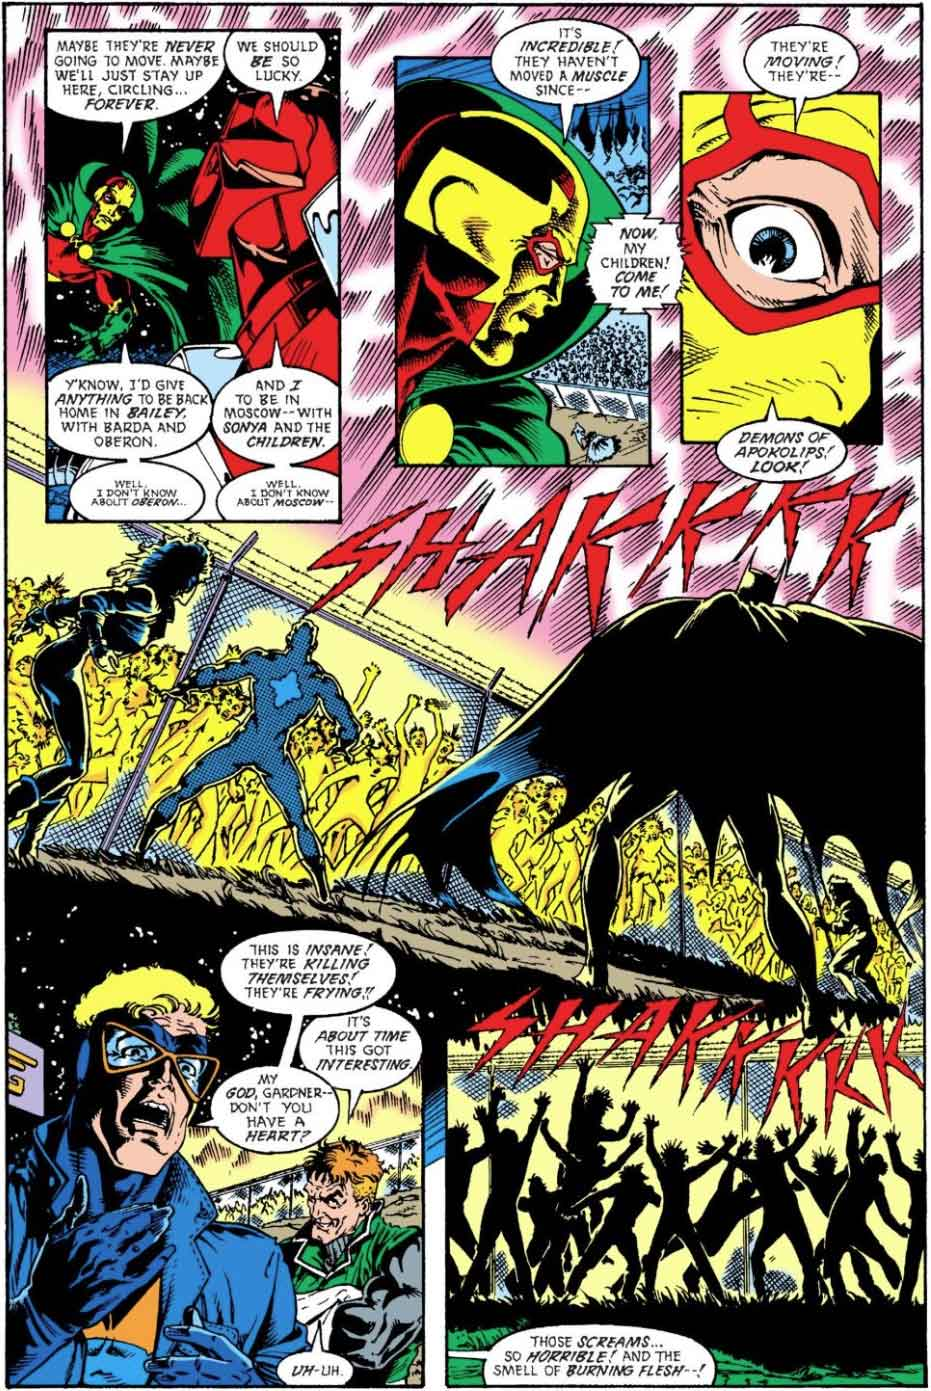 Justice League Europe #8 by Keith Giffen, J.M. DeMatteis, Bart Sears and Bob Smith